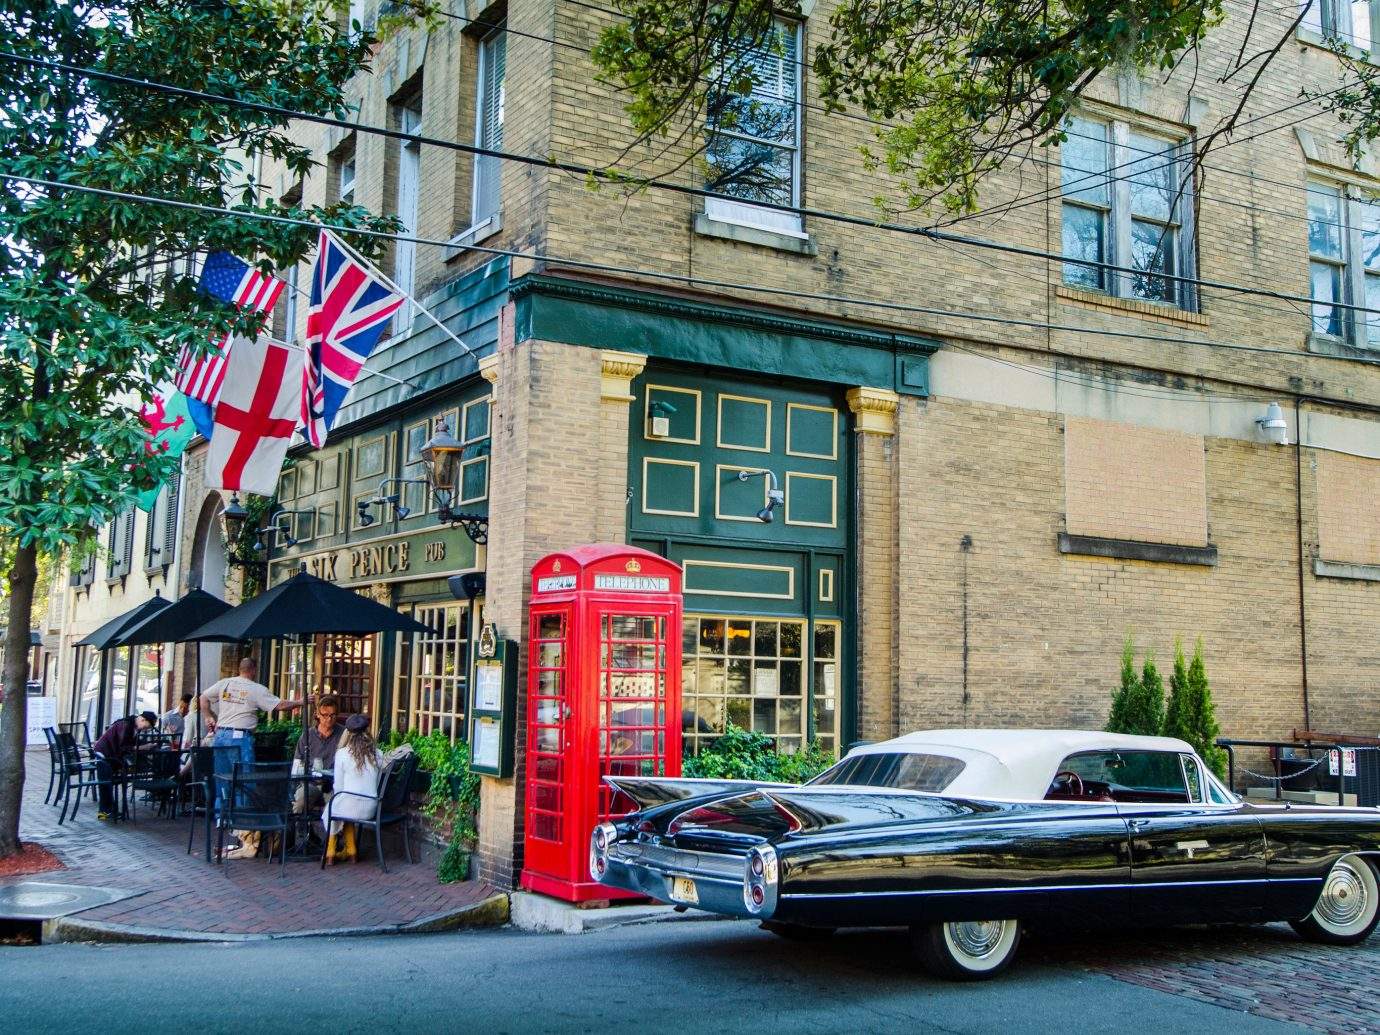 Corner restaurant and vintage car in Savannah, GA